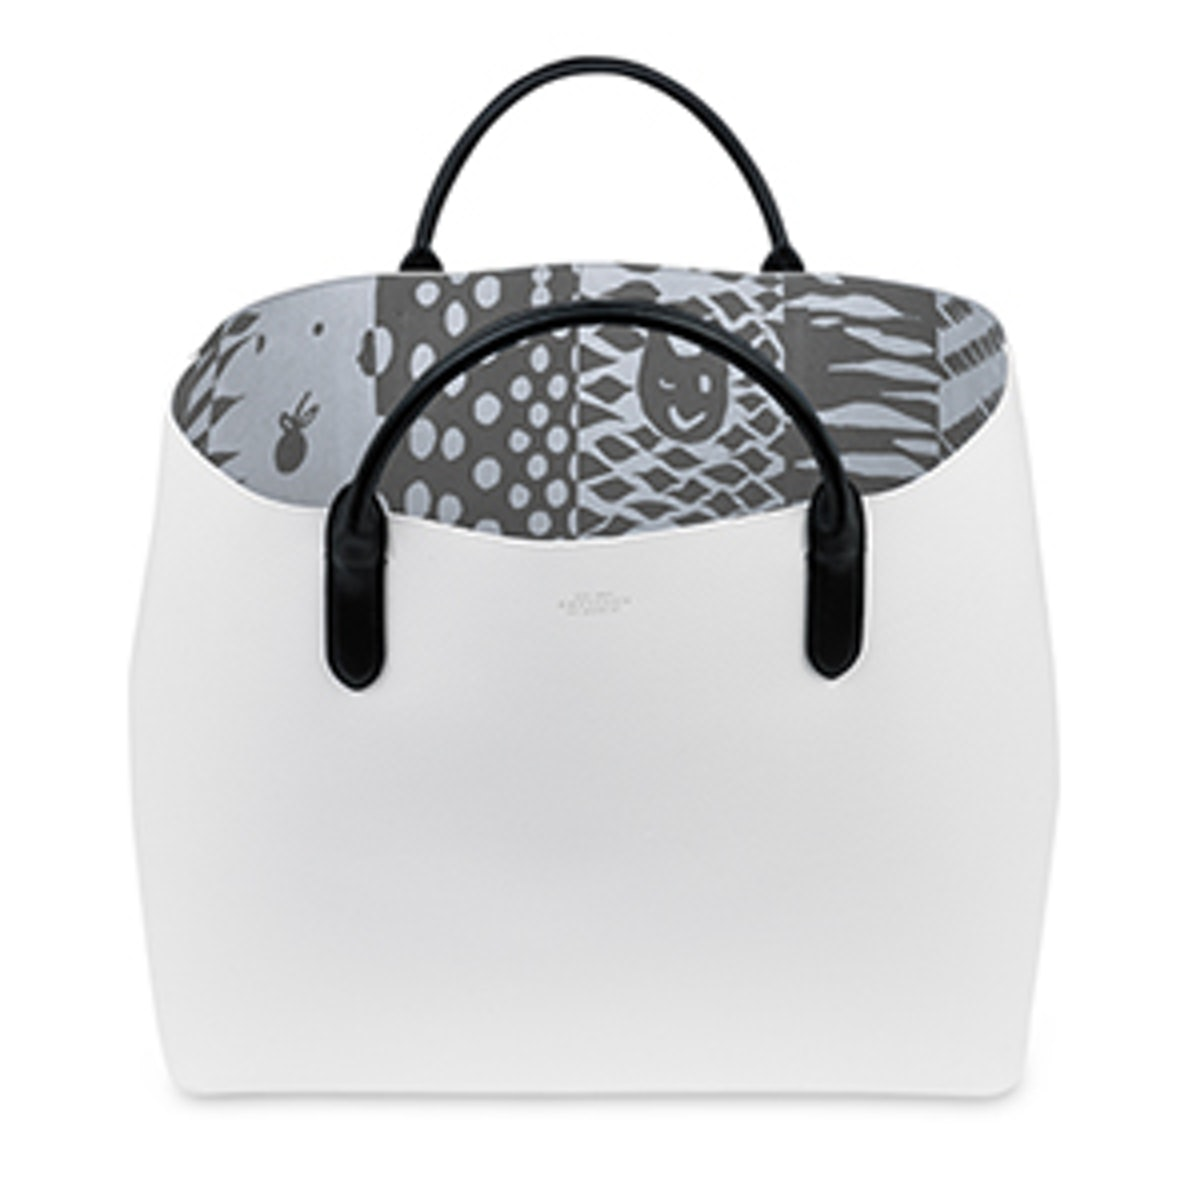 Large Leather Tote